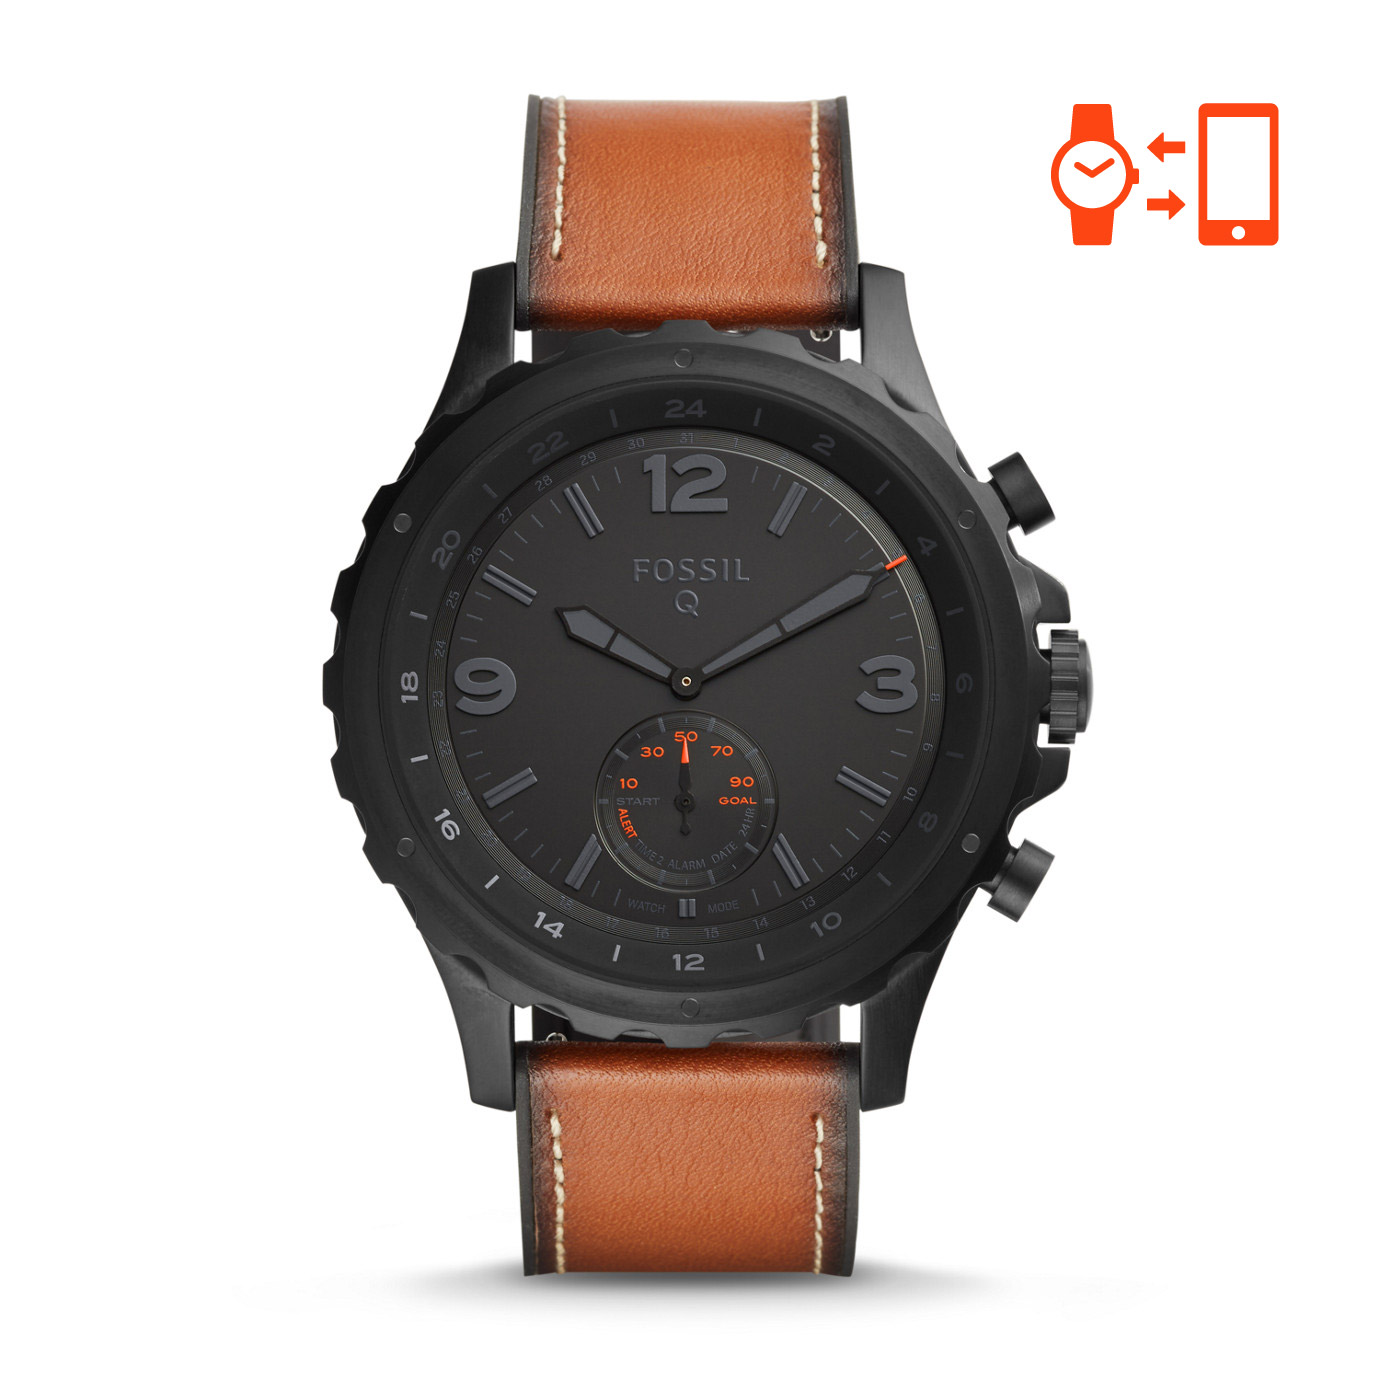 Fossil Nate Dark Brown Leather Hybrid Smartwatch